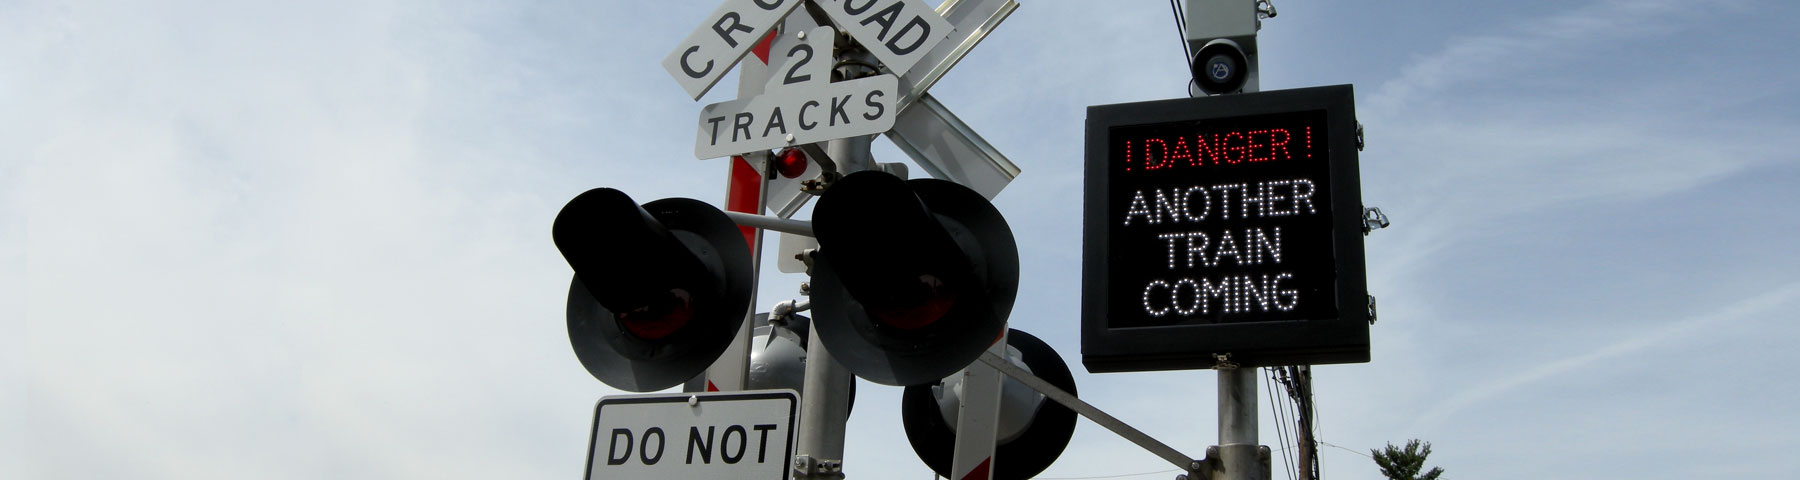 LED Preemptive Railroad Crossing Safety Signs